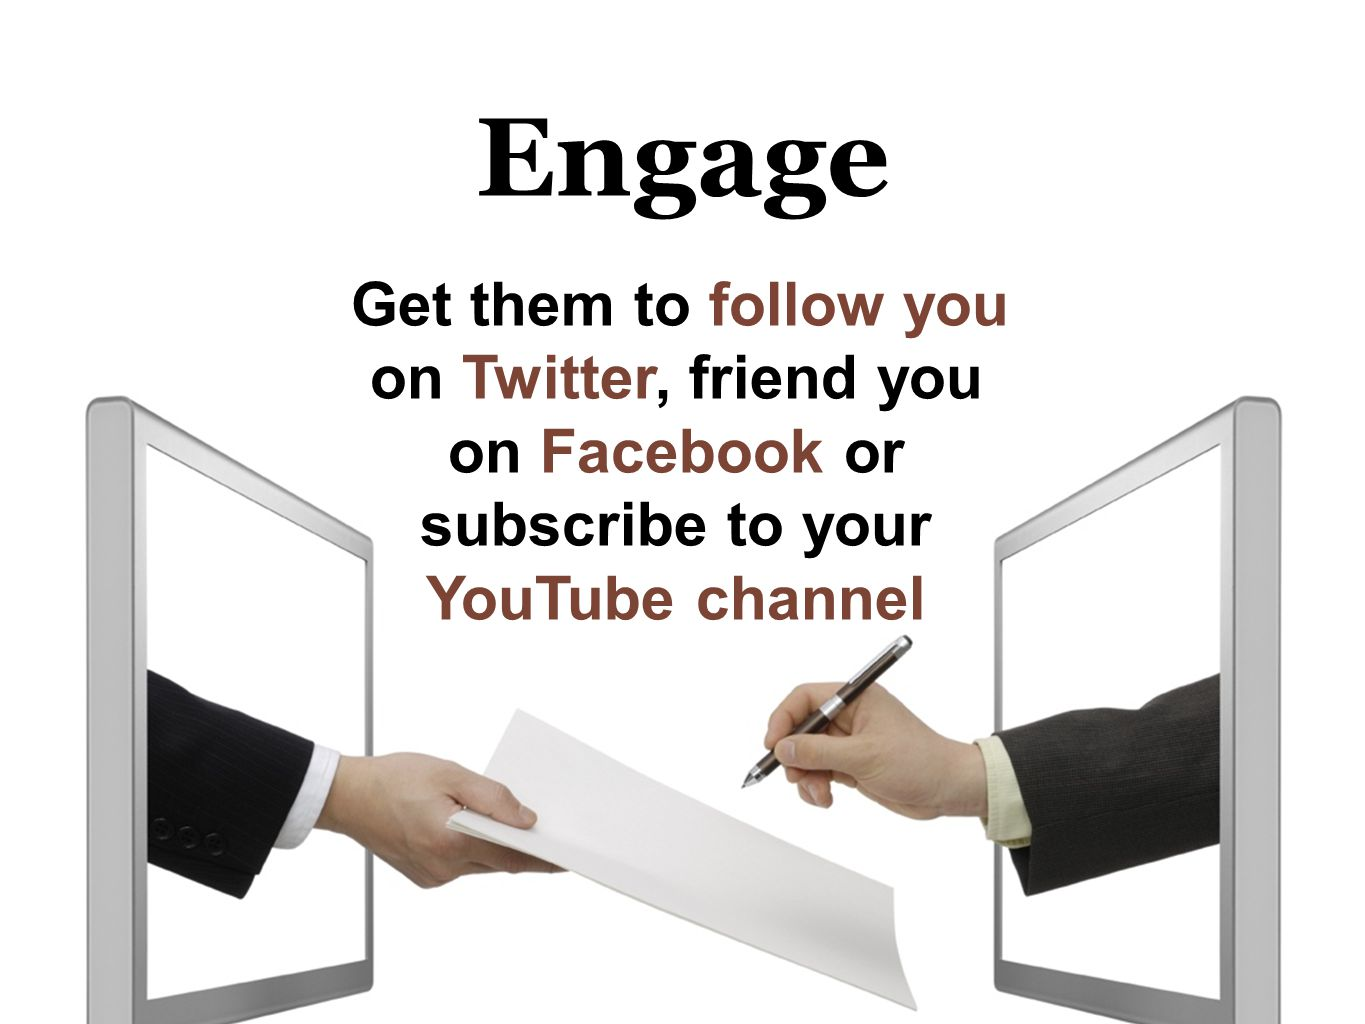 Engage Get them to follow you on Twitter, friend you on Facebook or subscribe to your YouTube channel